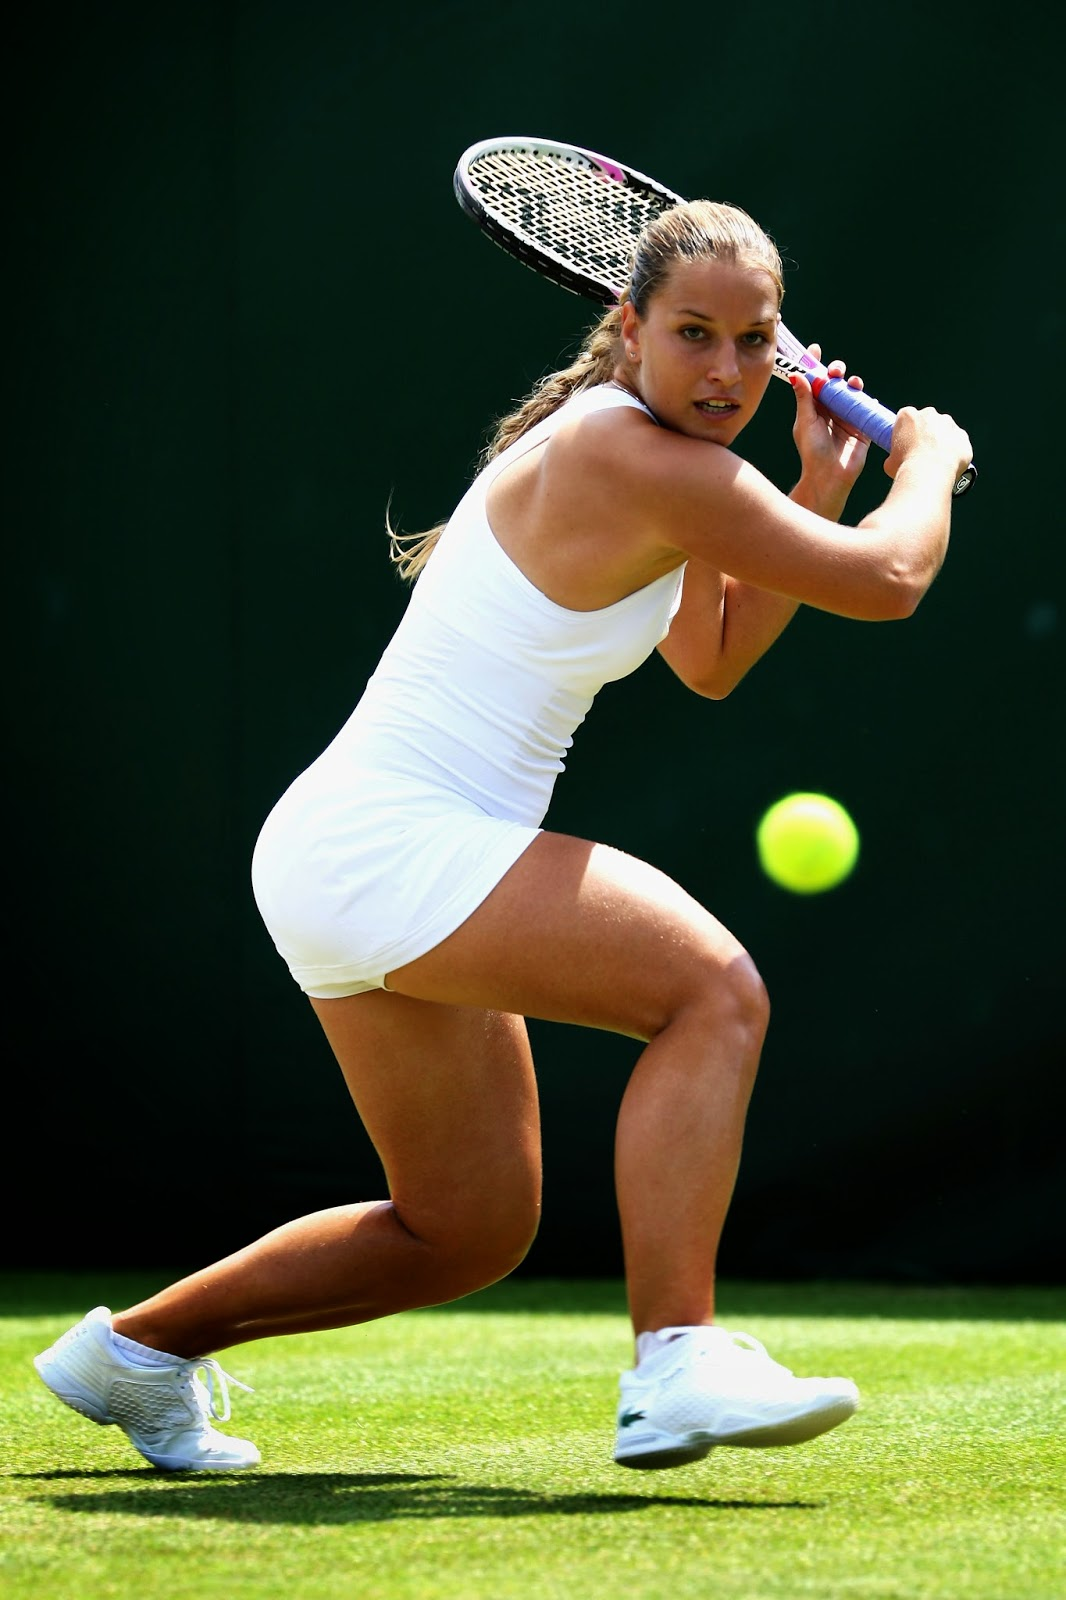 Dominika Cibulkova Beautiful New Hot Pictures 2014 15 I